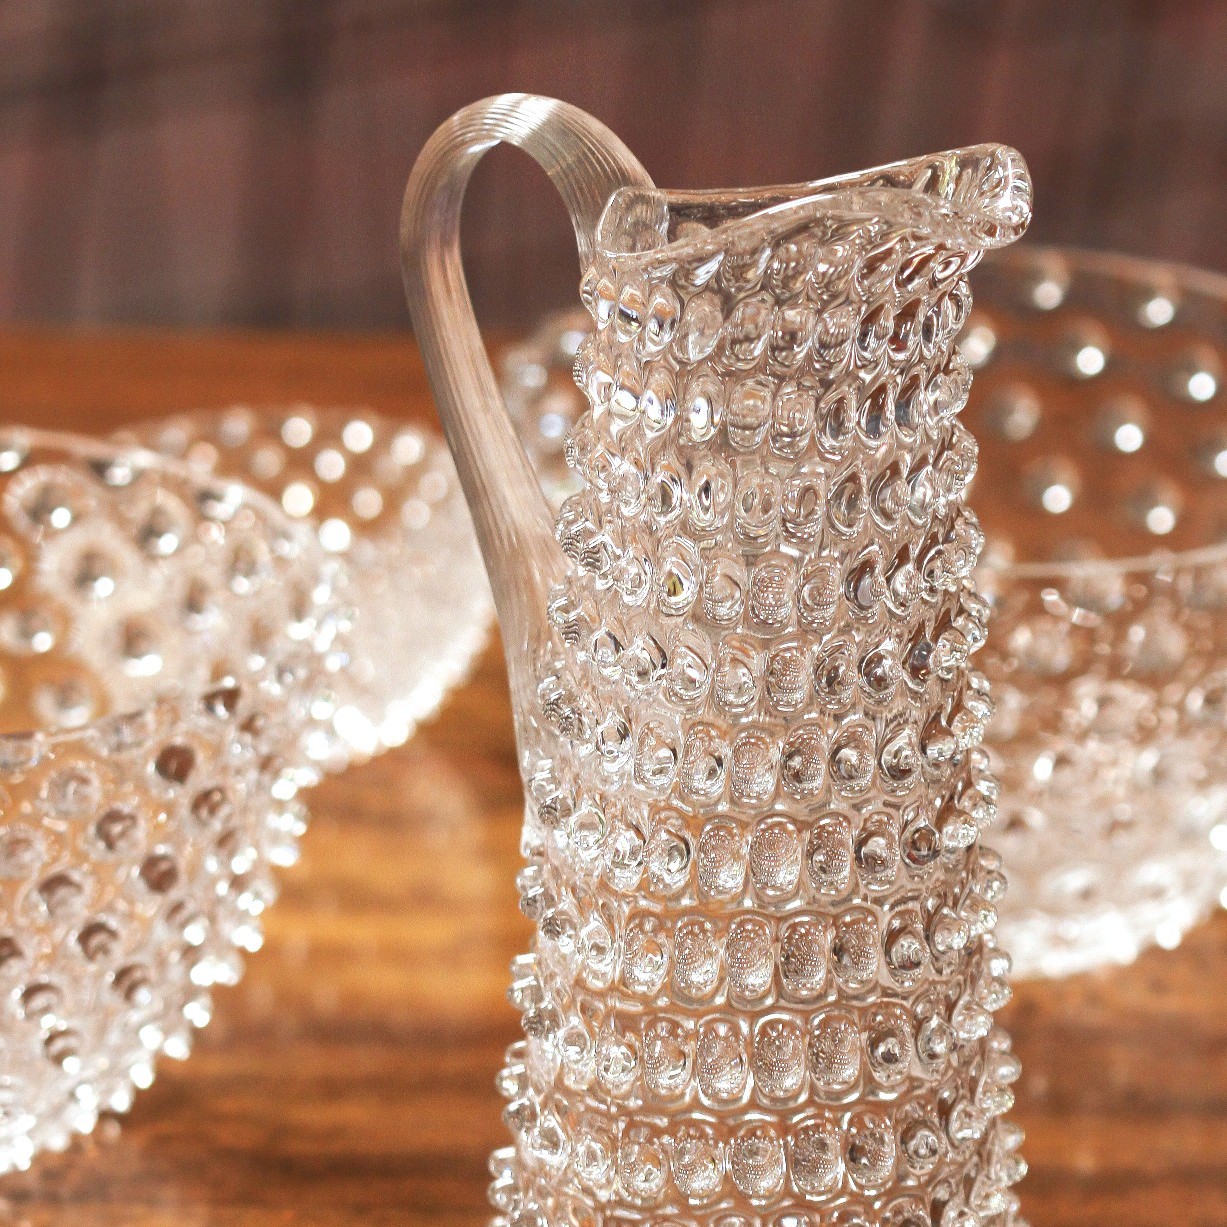 Cheoma Bubble Glass   Price Available Upon Request